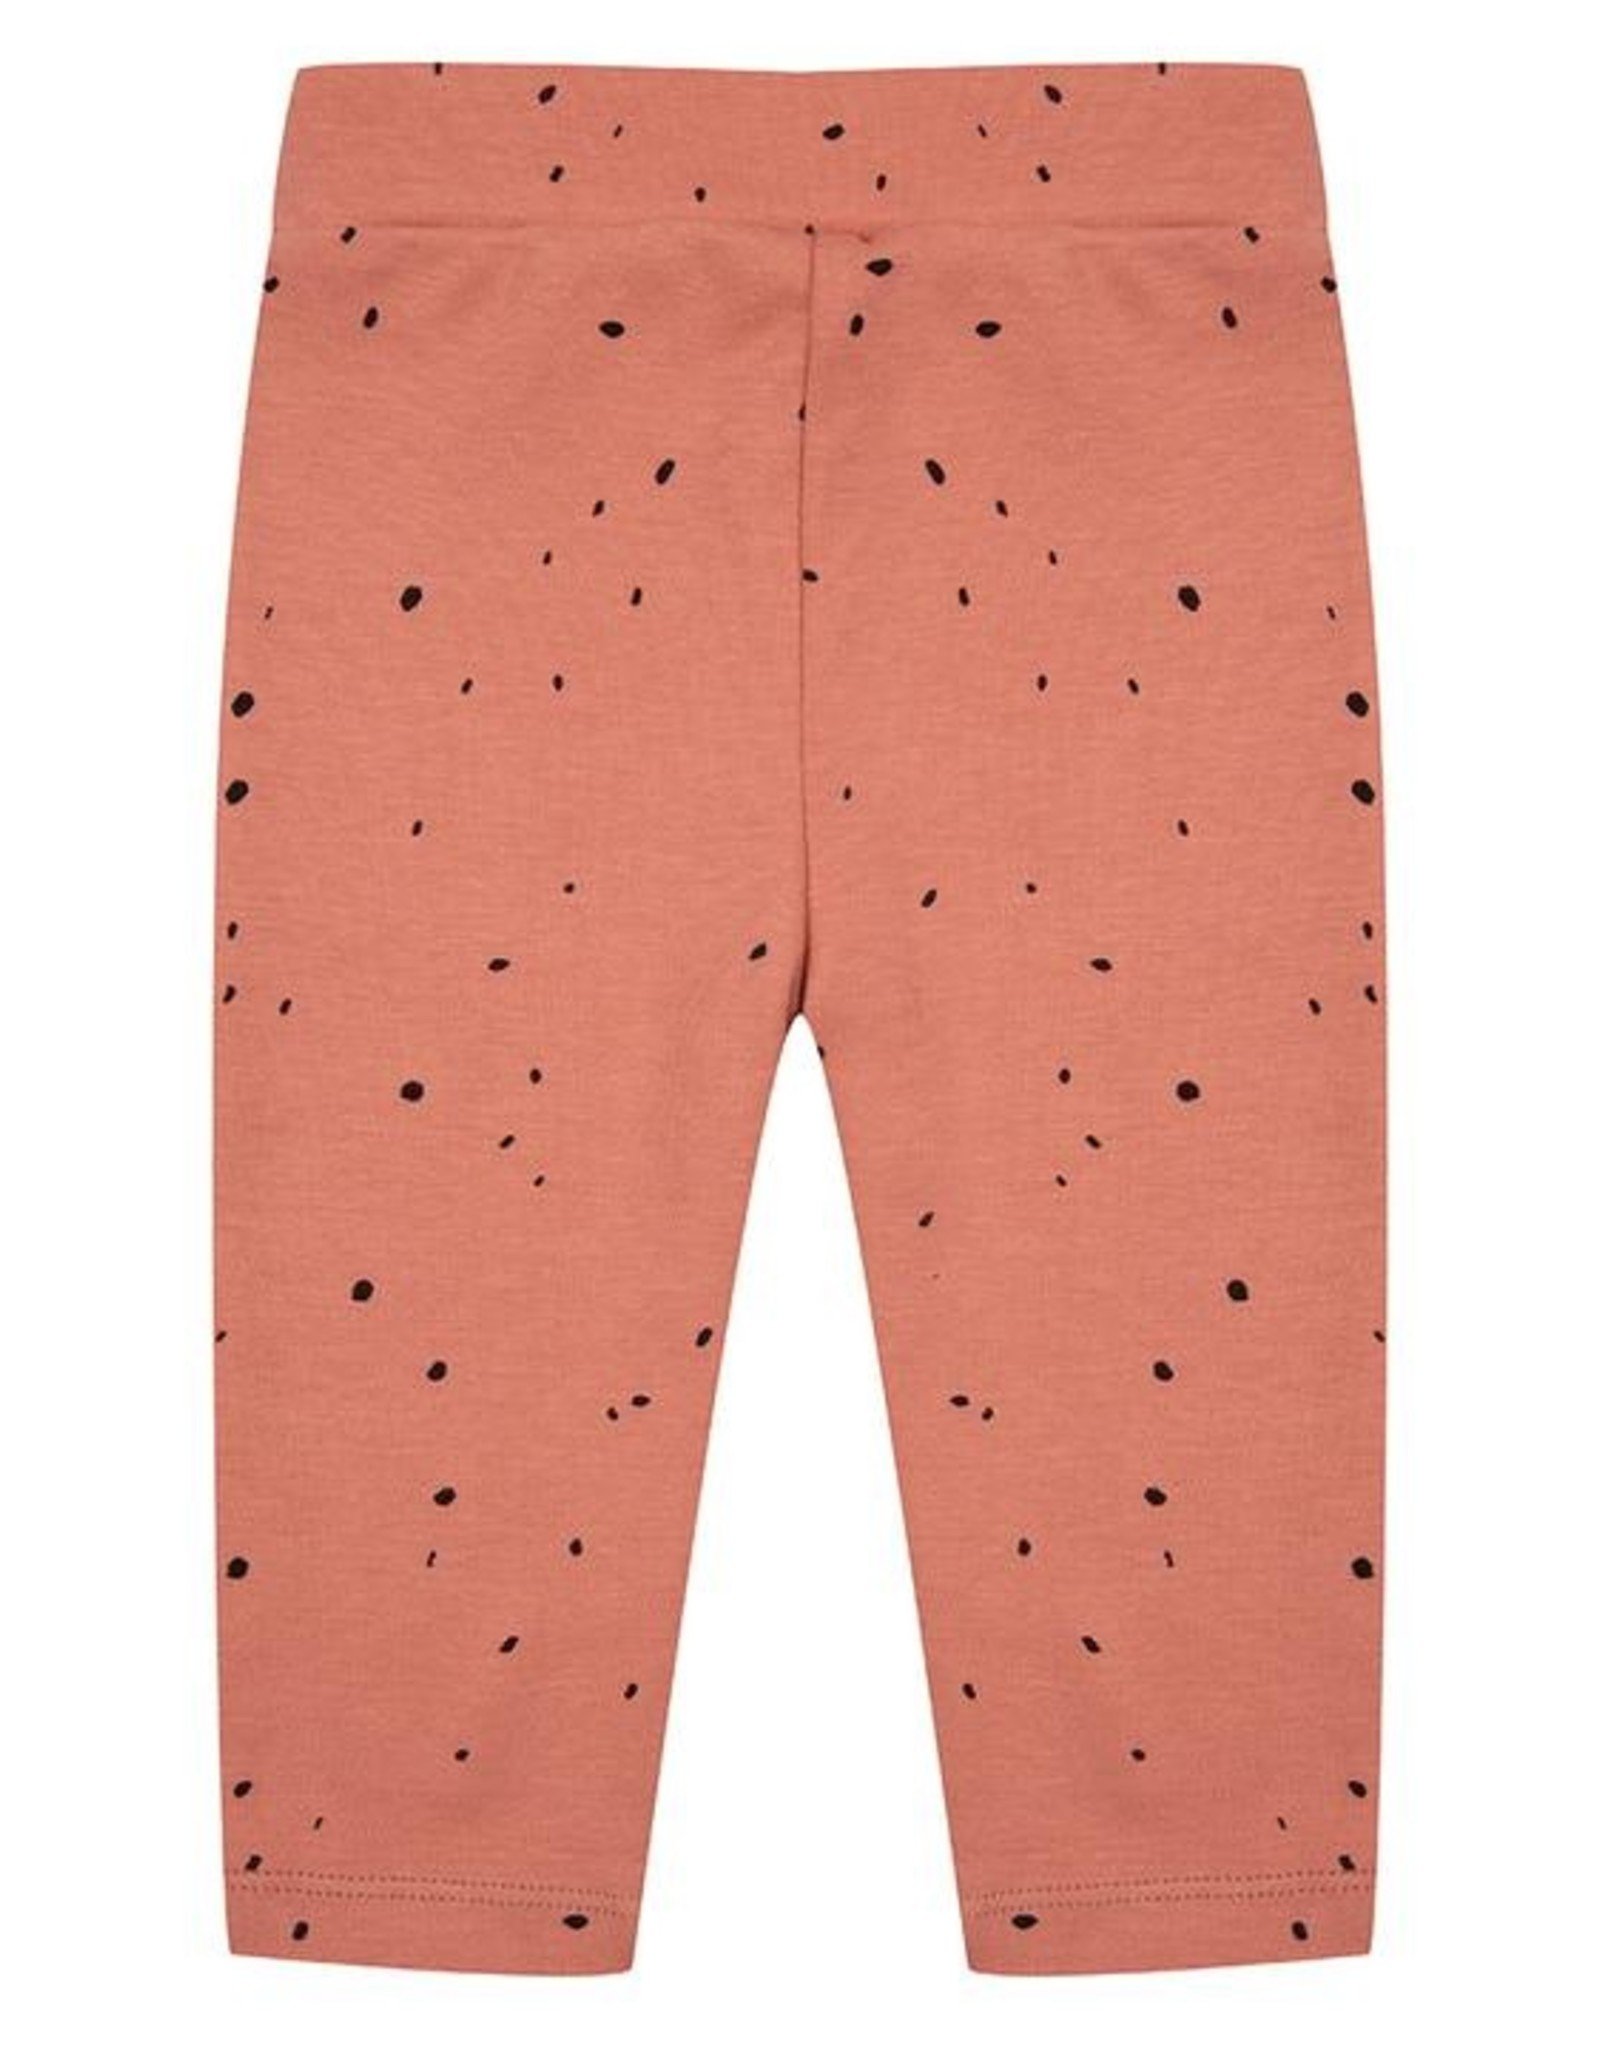 Little Indians New Born Legging - Canyon Clay 0 - 1 m